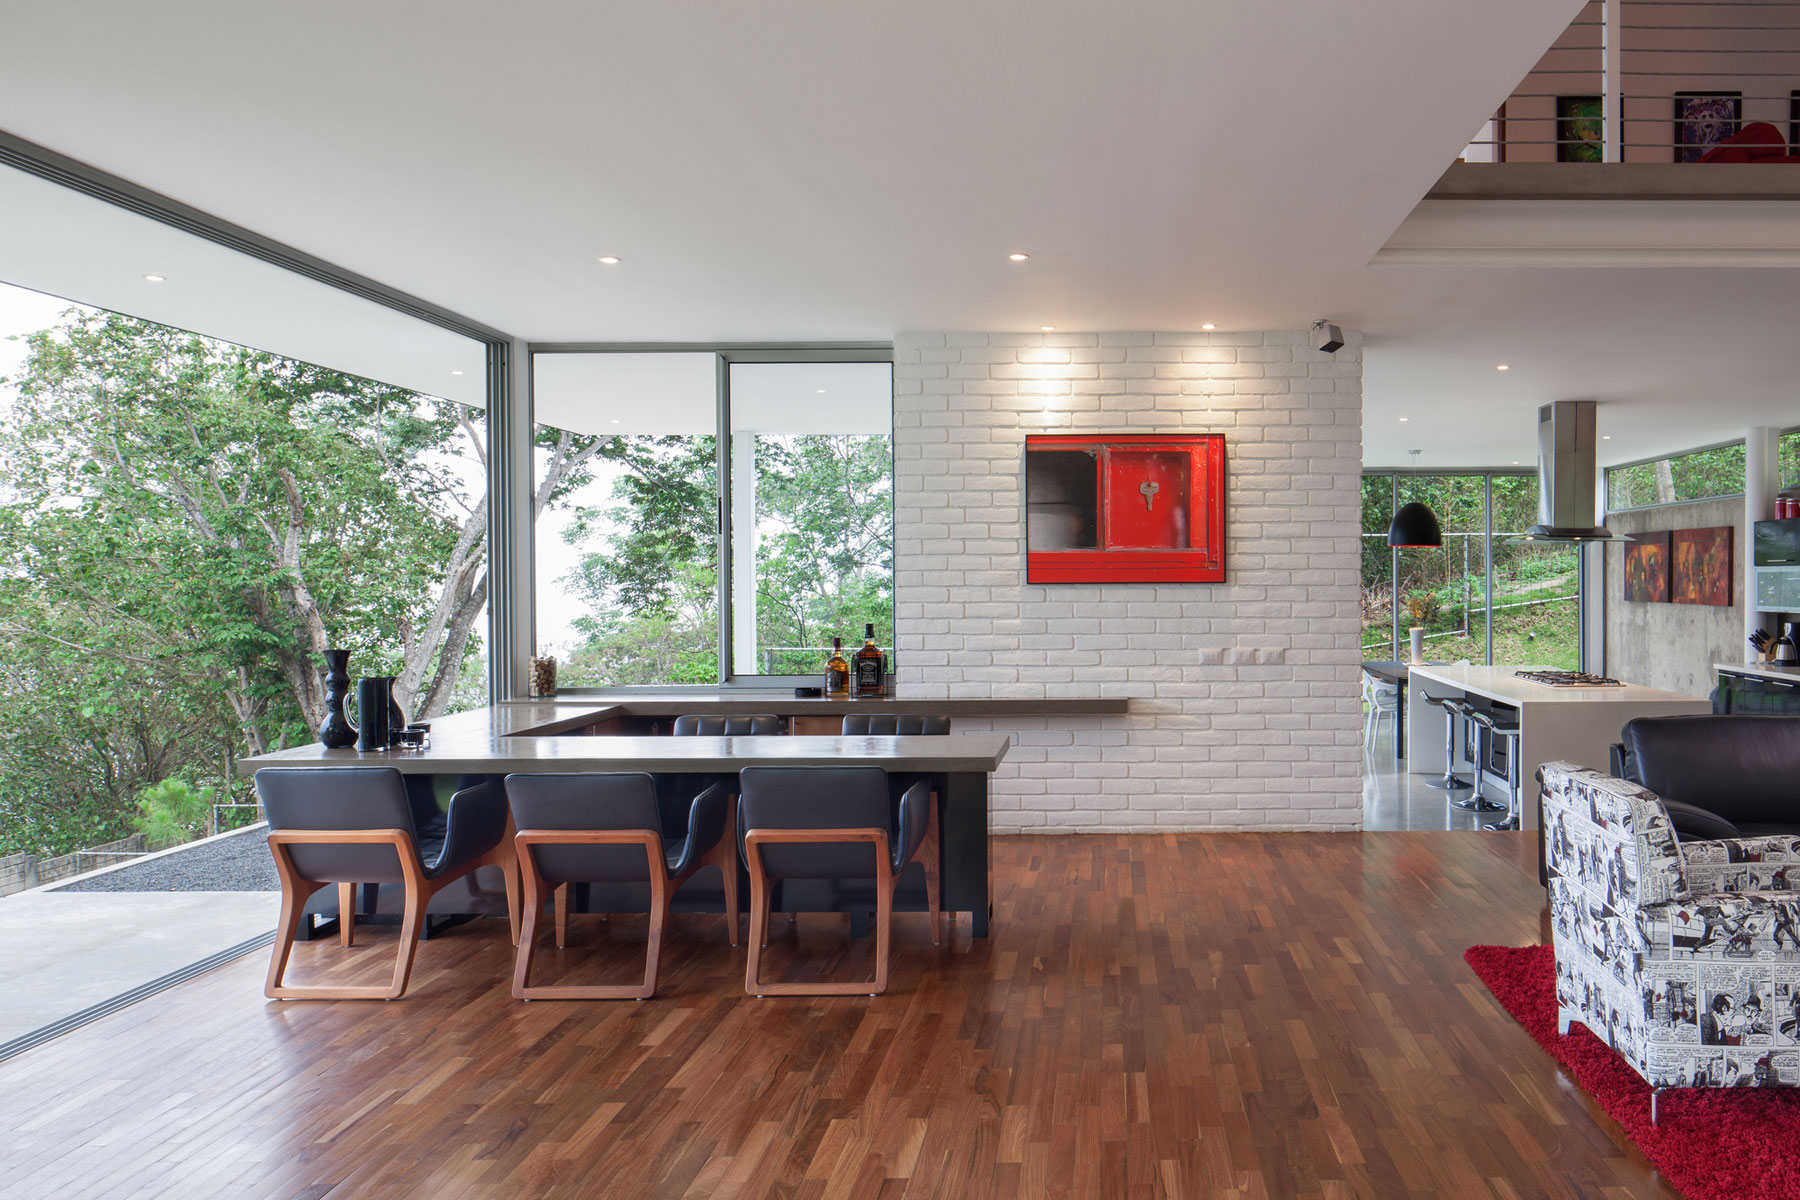 Mi3 House Talks about Playfulness as a Family by Cincopatasalgato-07